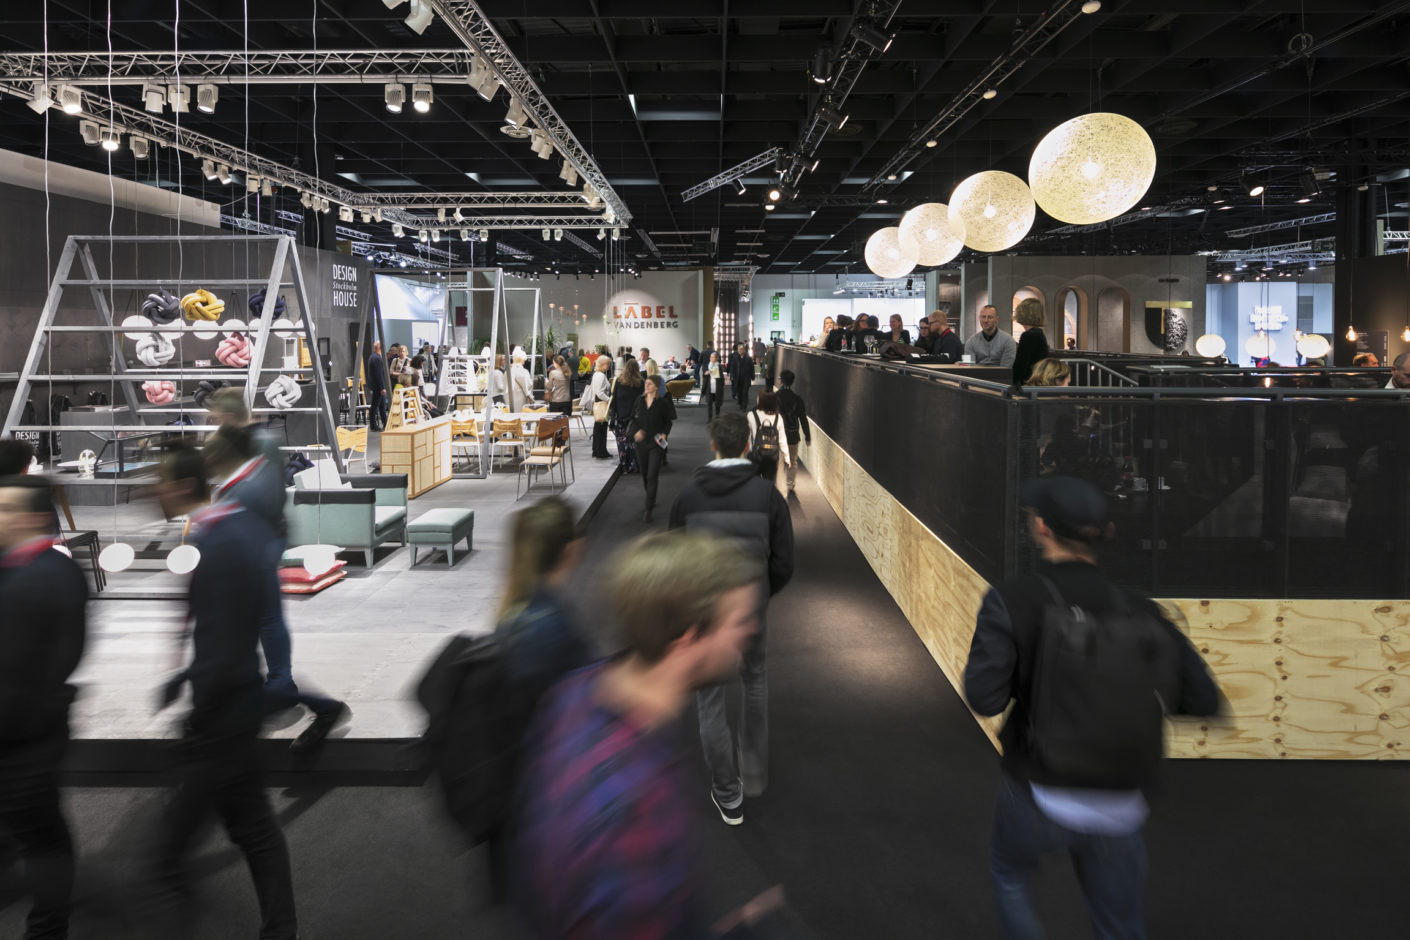 Numerous catering areas in the exhibition halls will be completely redesigned for imm cologne 2019.